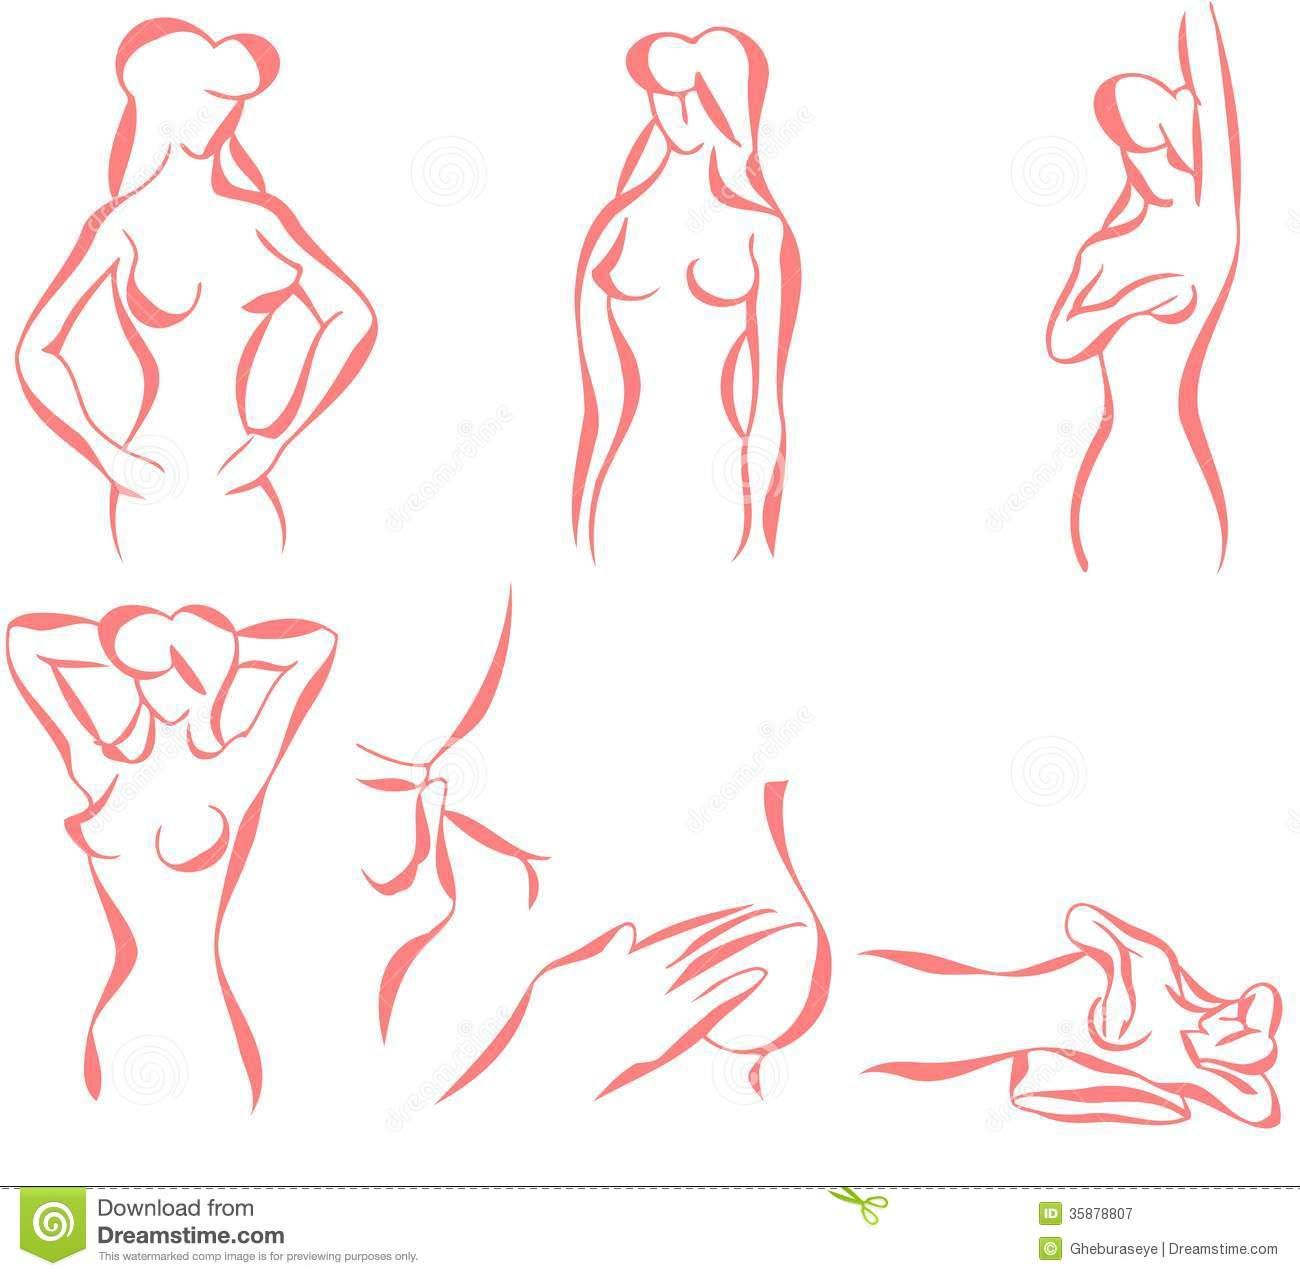 Breast cancer self examination instructional video 2 Part 2 3